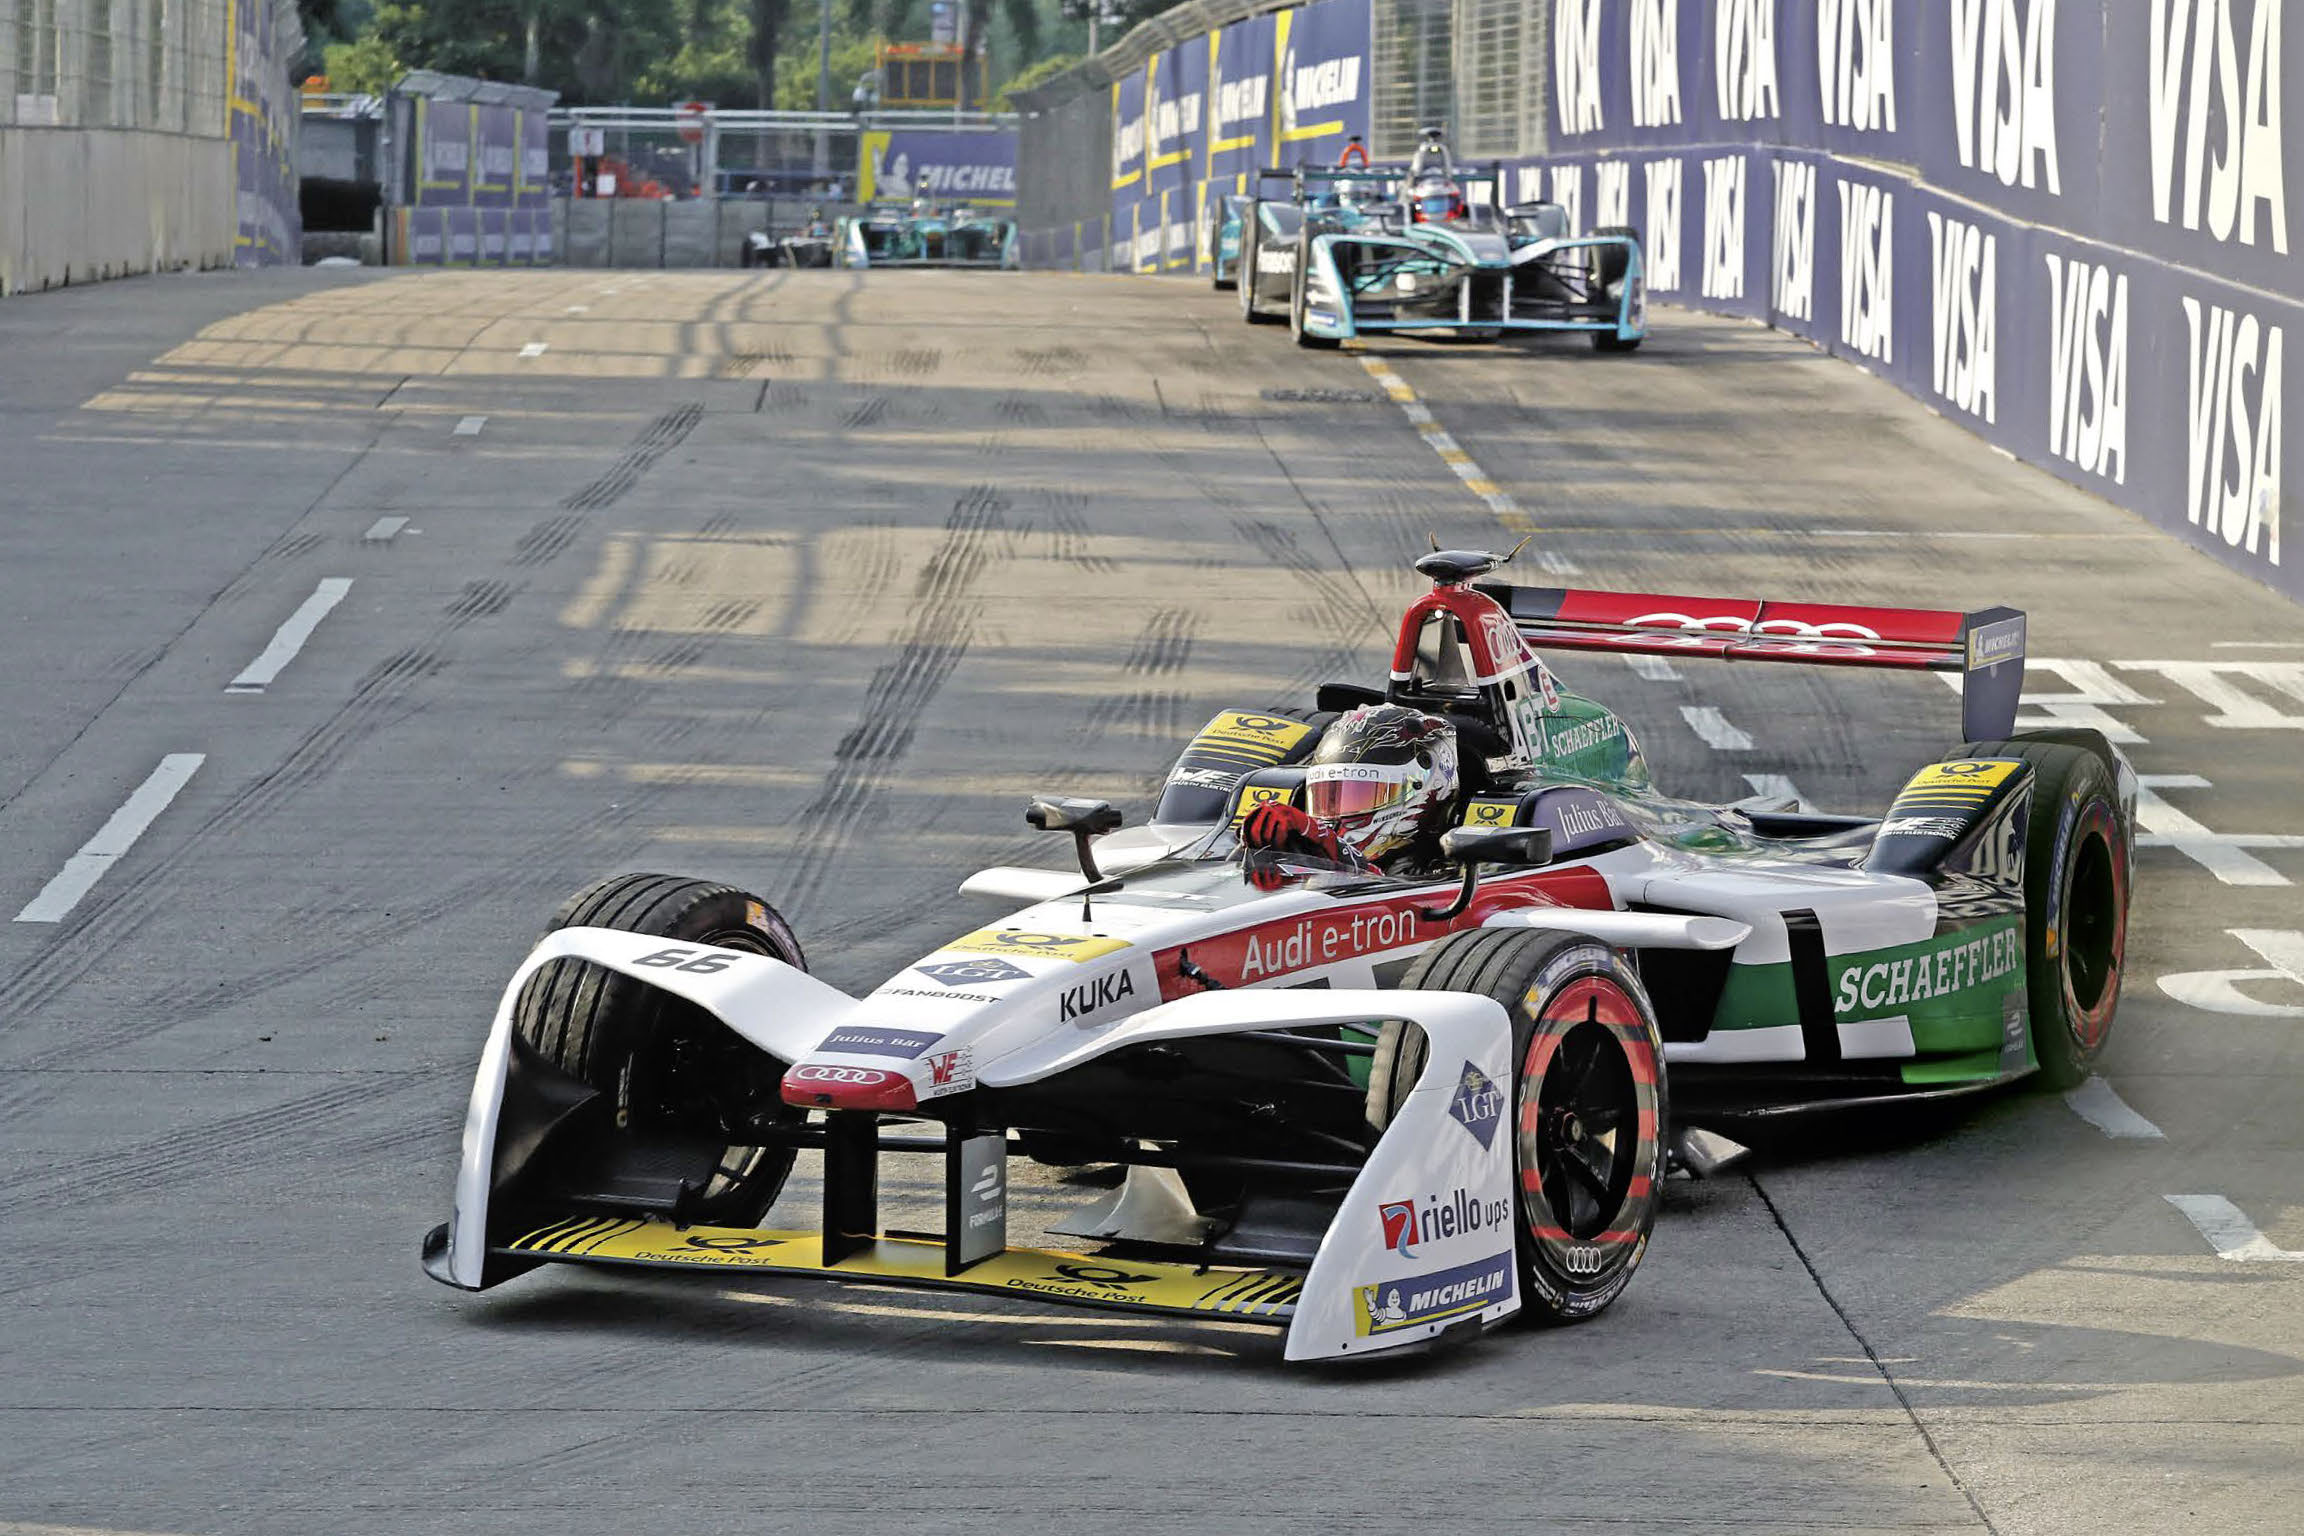 Würth Elektronik eiSos is a technology partner of the Audi Sport Abt Schaeffler racing team in the all-electric Formula E racing series. The highly efficient components contributed to Lucas di Grassi's win at the World Championship in the 2016 / 2017 season and to 2nd place in the team rankings.